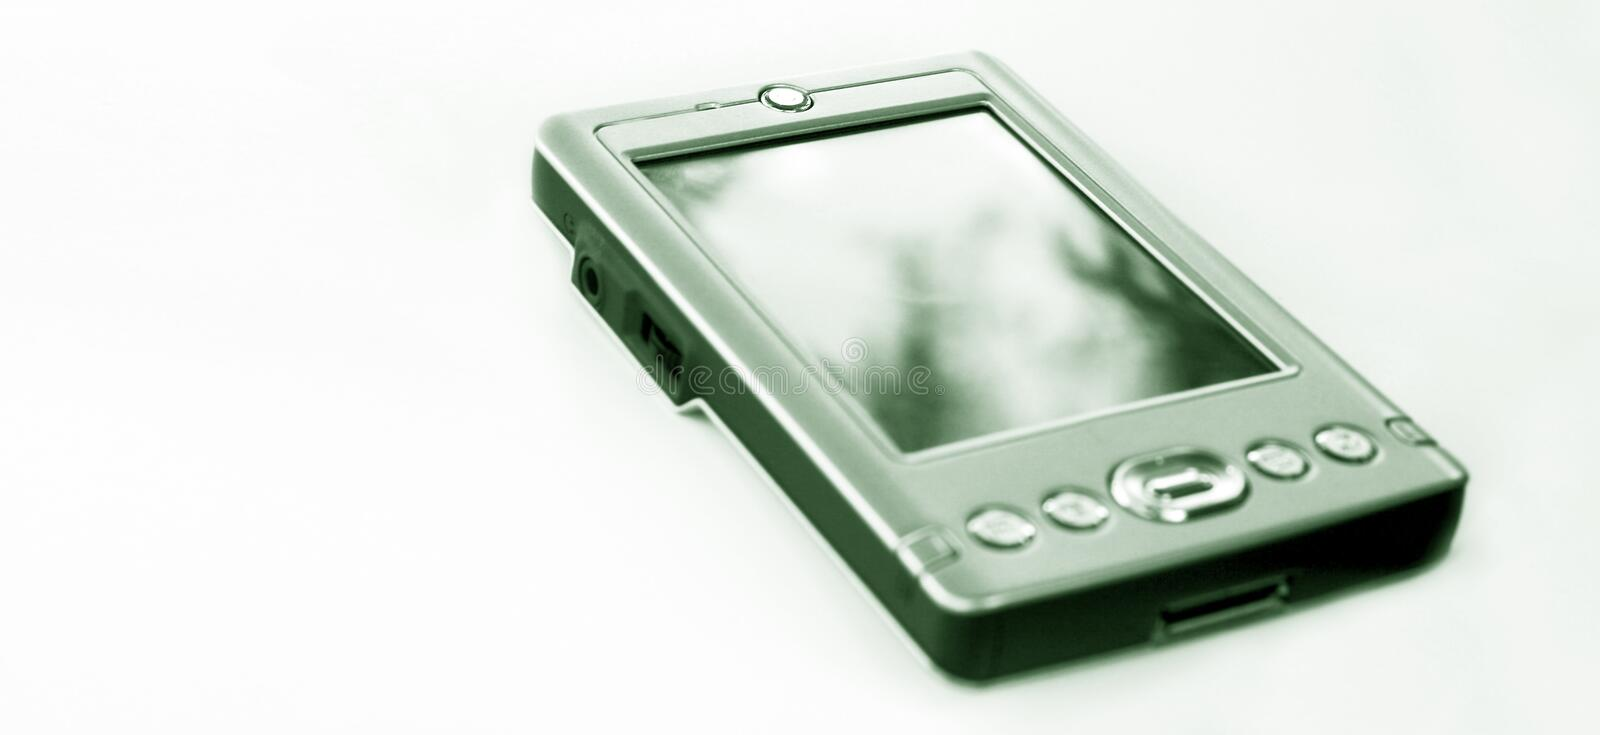 Small hand held computer royalty free stock images